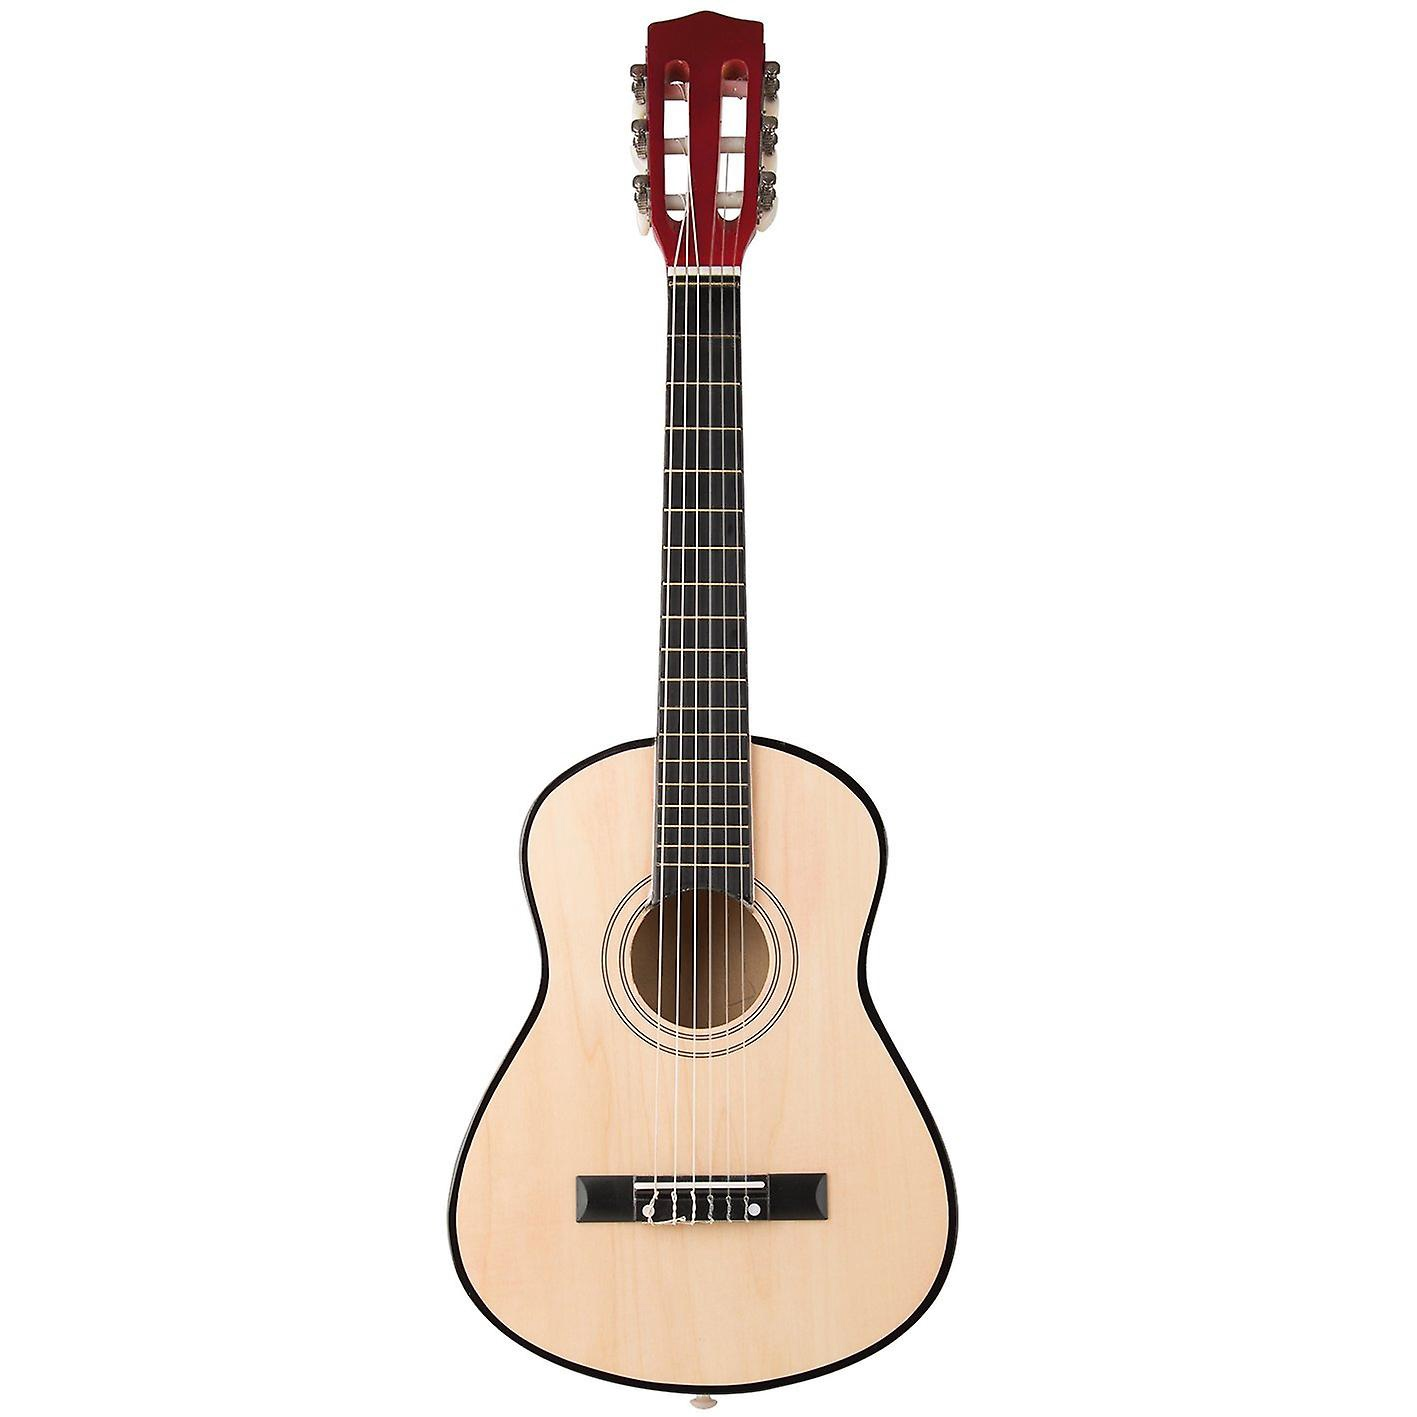 ACOUSTIC GUITAR 30 INCHES